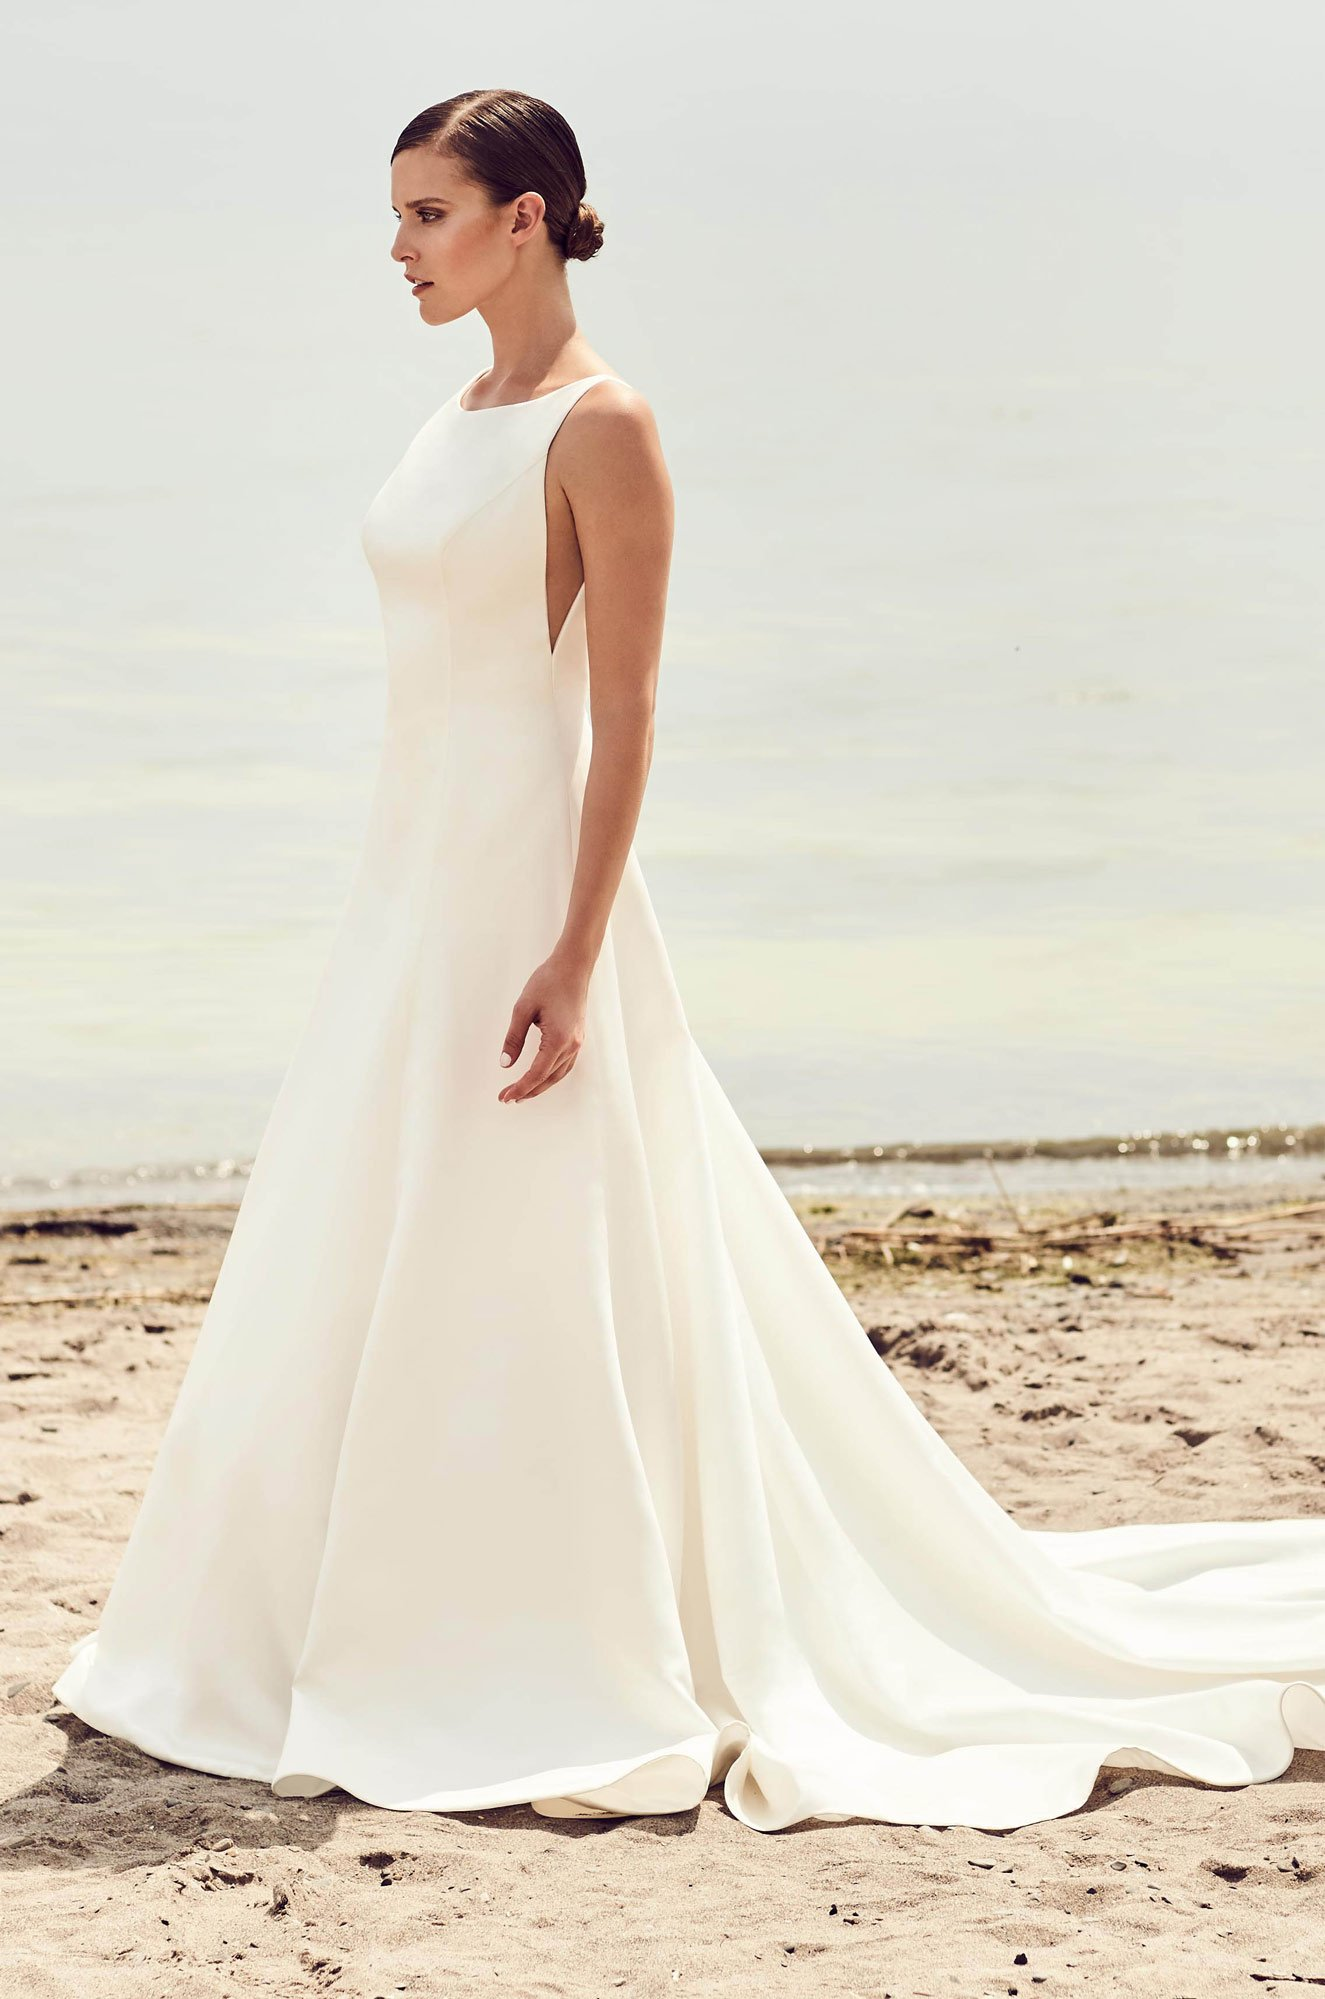 Sleek Modern Wedding Dress - Style #2115 | Mikaella Bridal